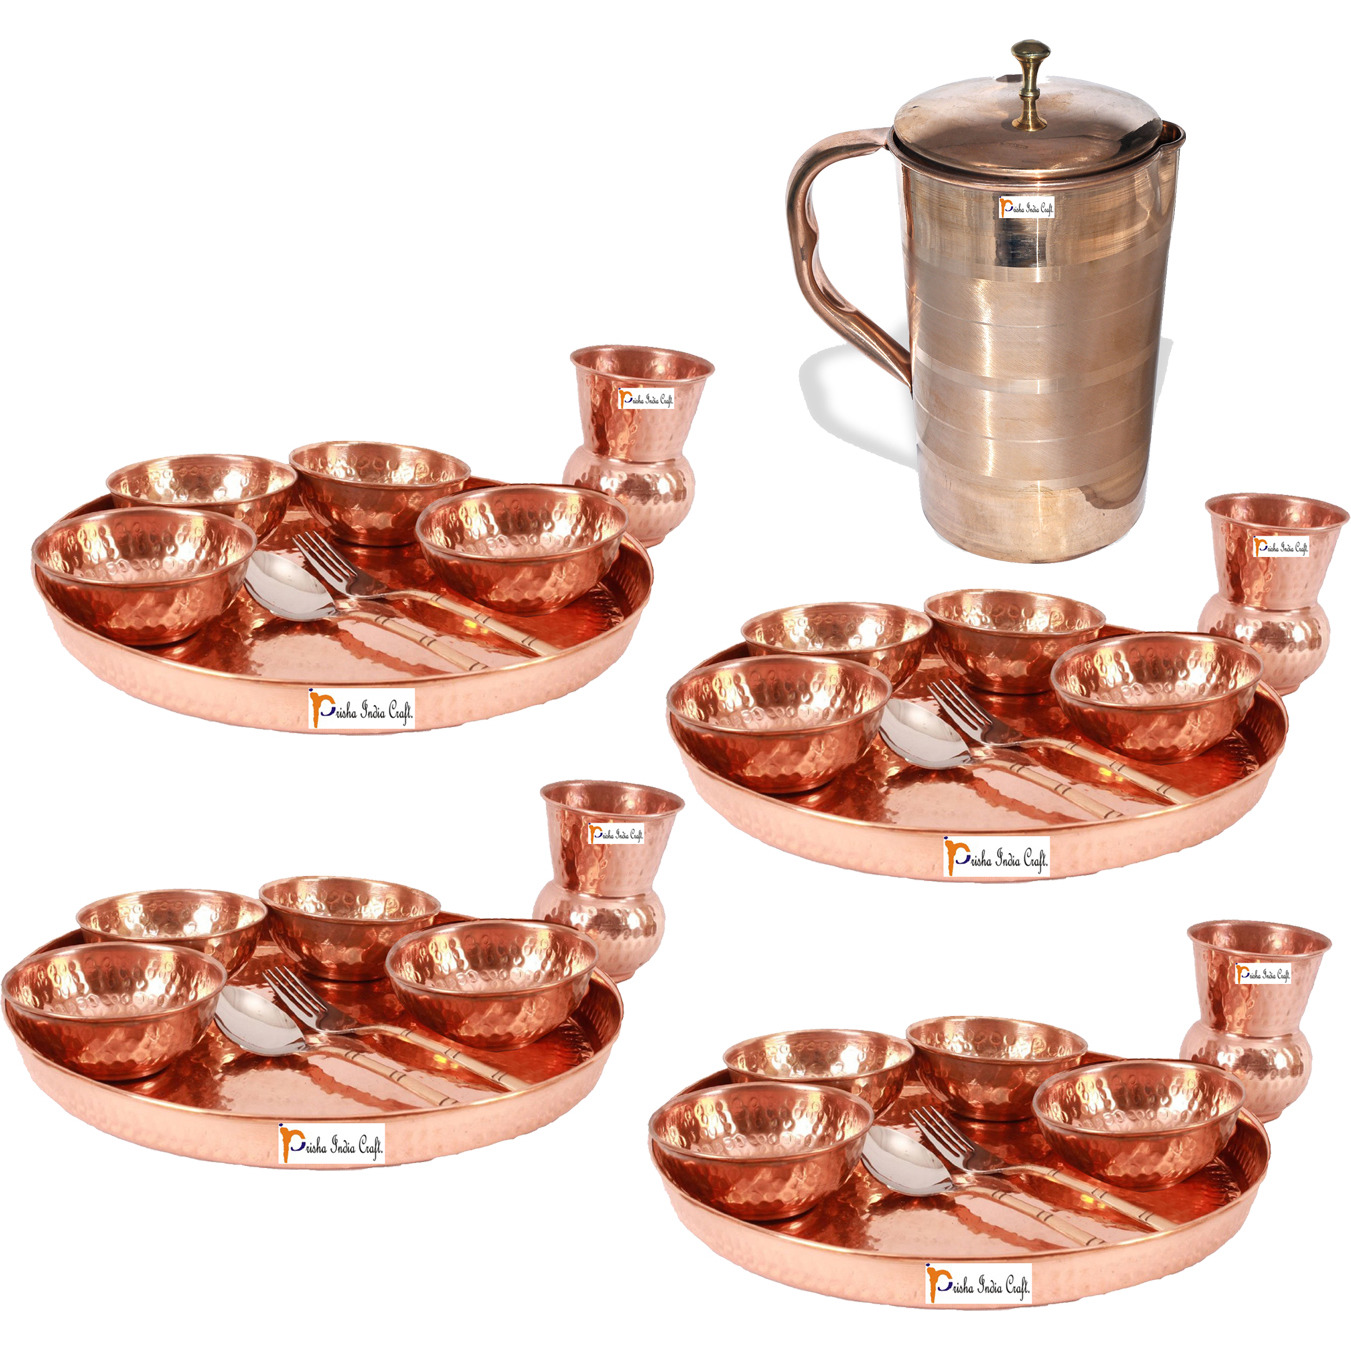 Prisha India Craft B. Set of 4 Dinnerware Traditional 100% Pure Copper Dinner Set of Thali Plate, Bowls, Glass and Spoon, Dia 12  With 1 Luxury Style Pure Copper Pitcher Jug - Christmas Gift